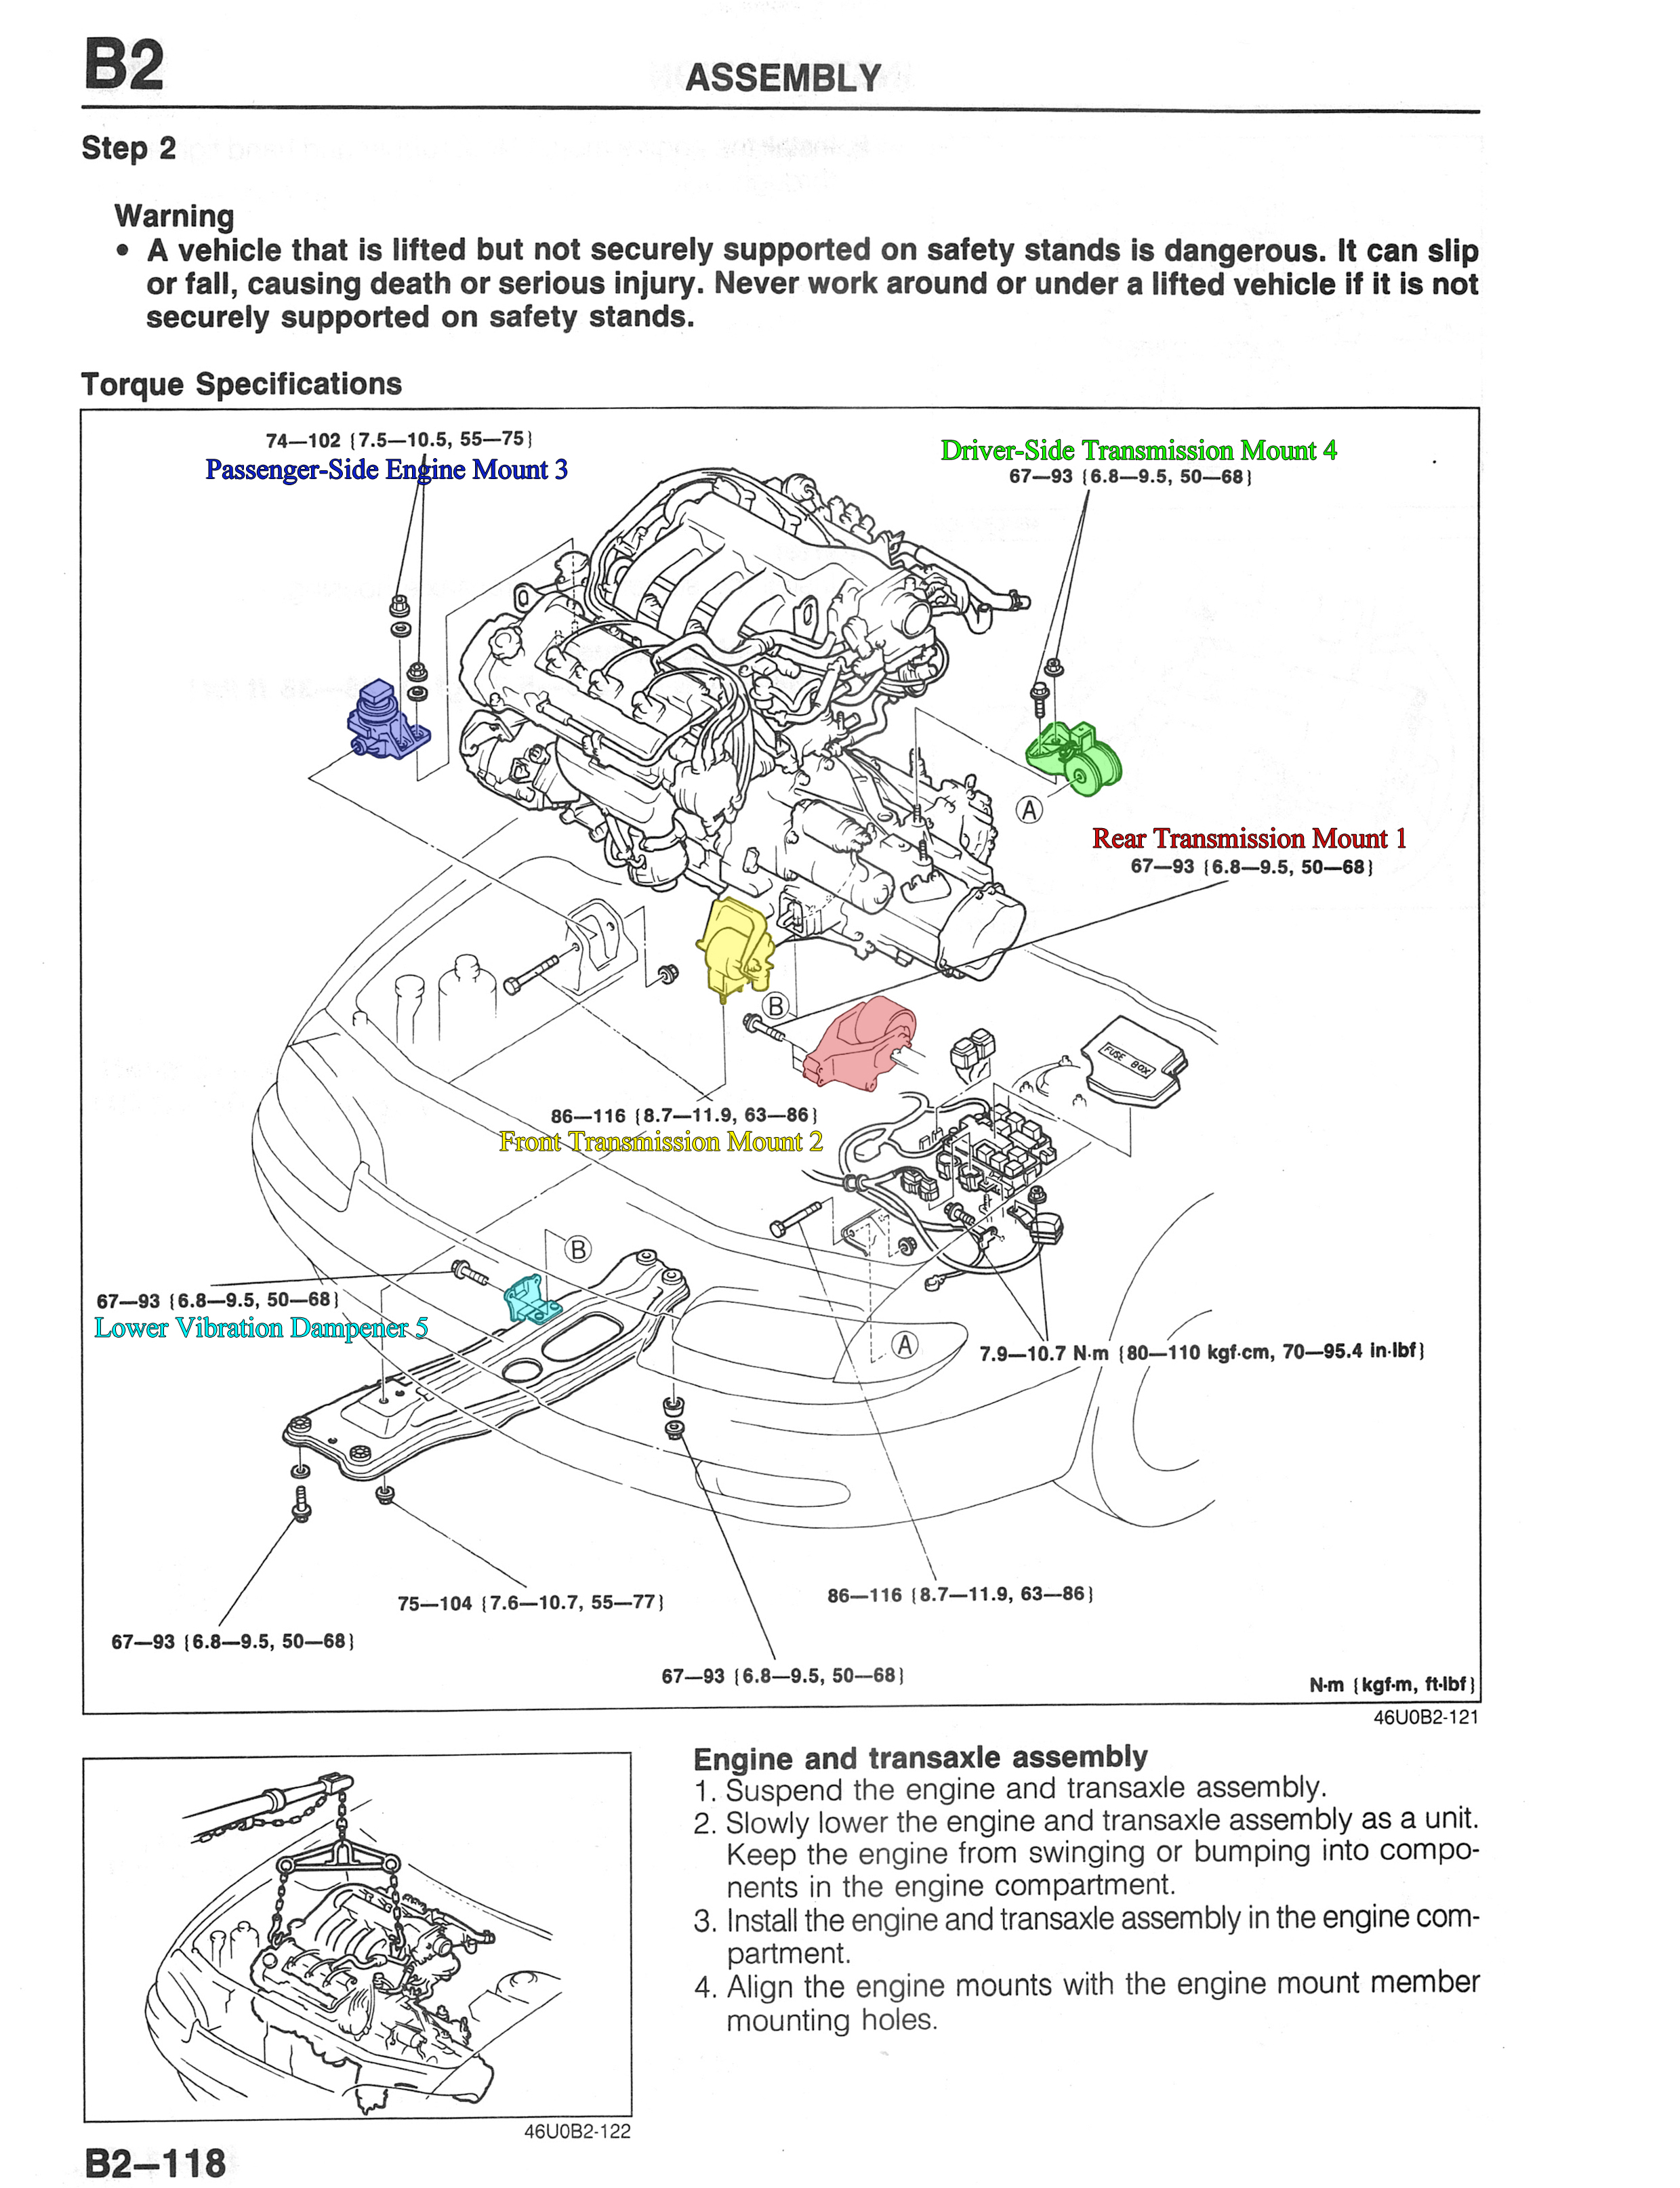 Motor Mount Installation 1993 2002 25l V6 Forums 2001 Mazda Millenia Engine Diagram B2 118